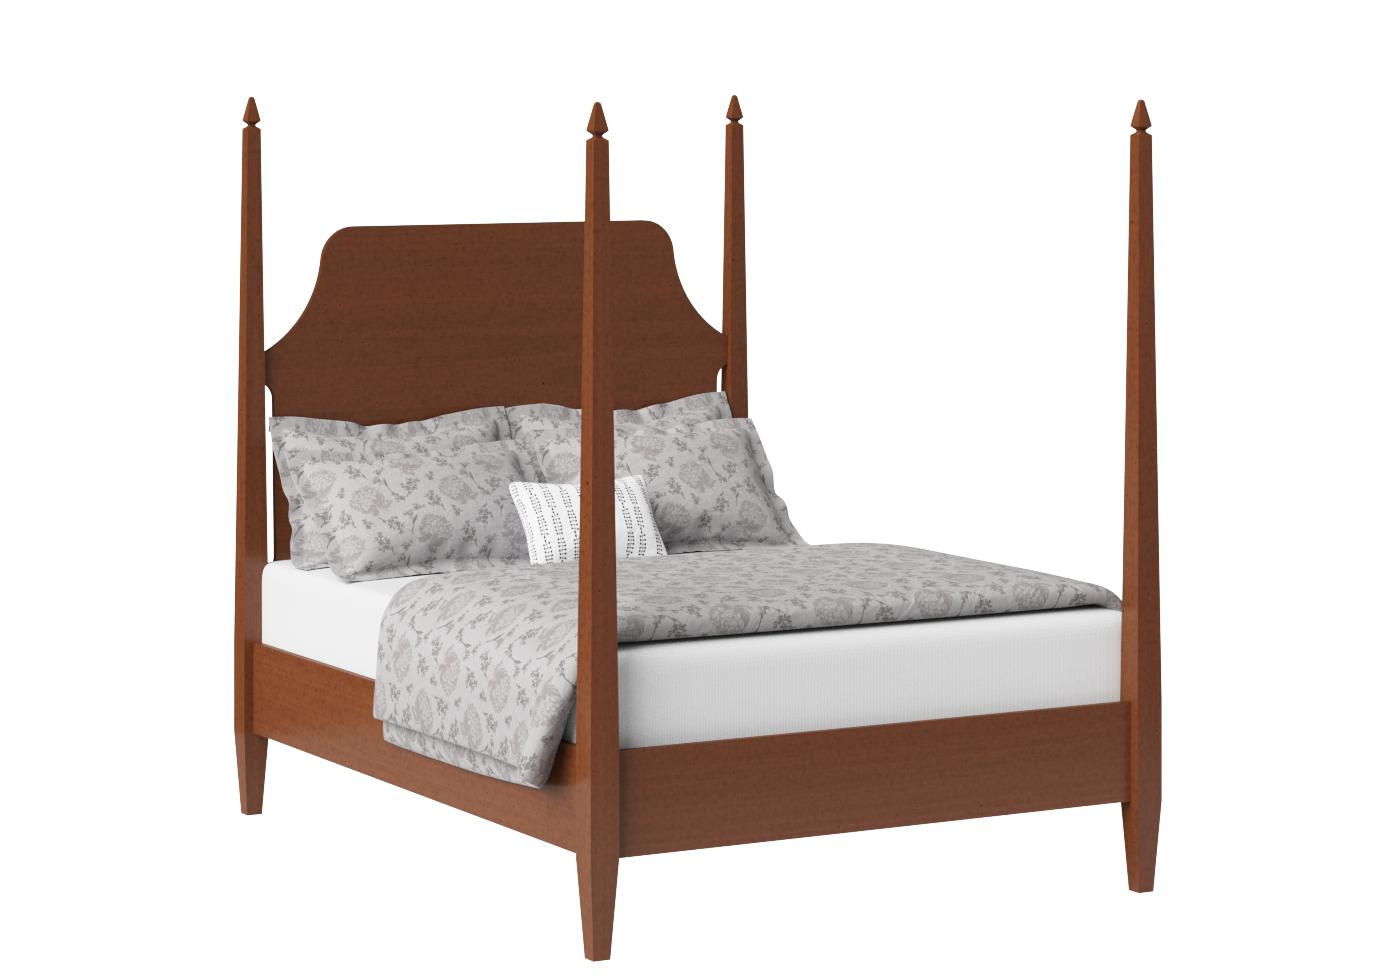 Wood Four Poster Beds Turner Wood Bedstead The Original Bedstead Company